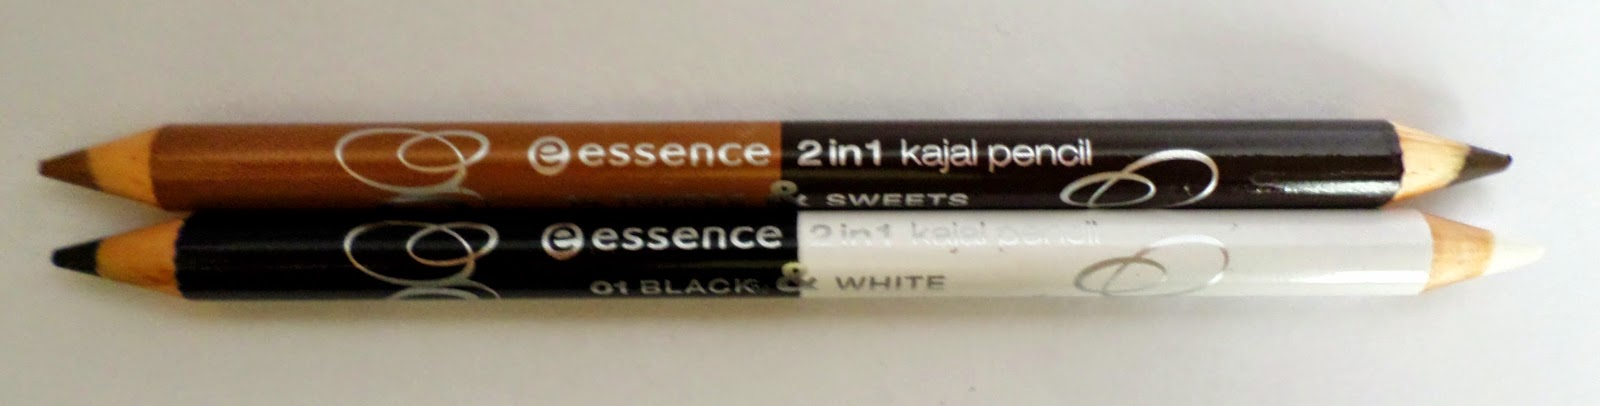 Essence 2 in 1 Kajal Pencil in Black & White and Toffee & Sweets